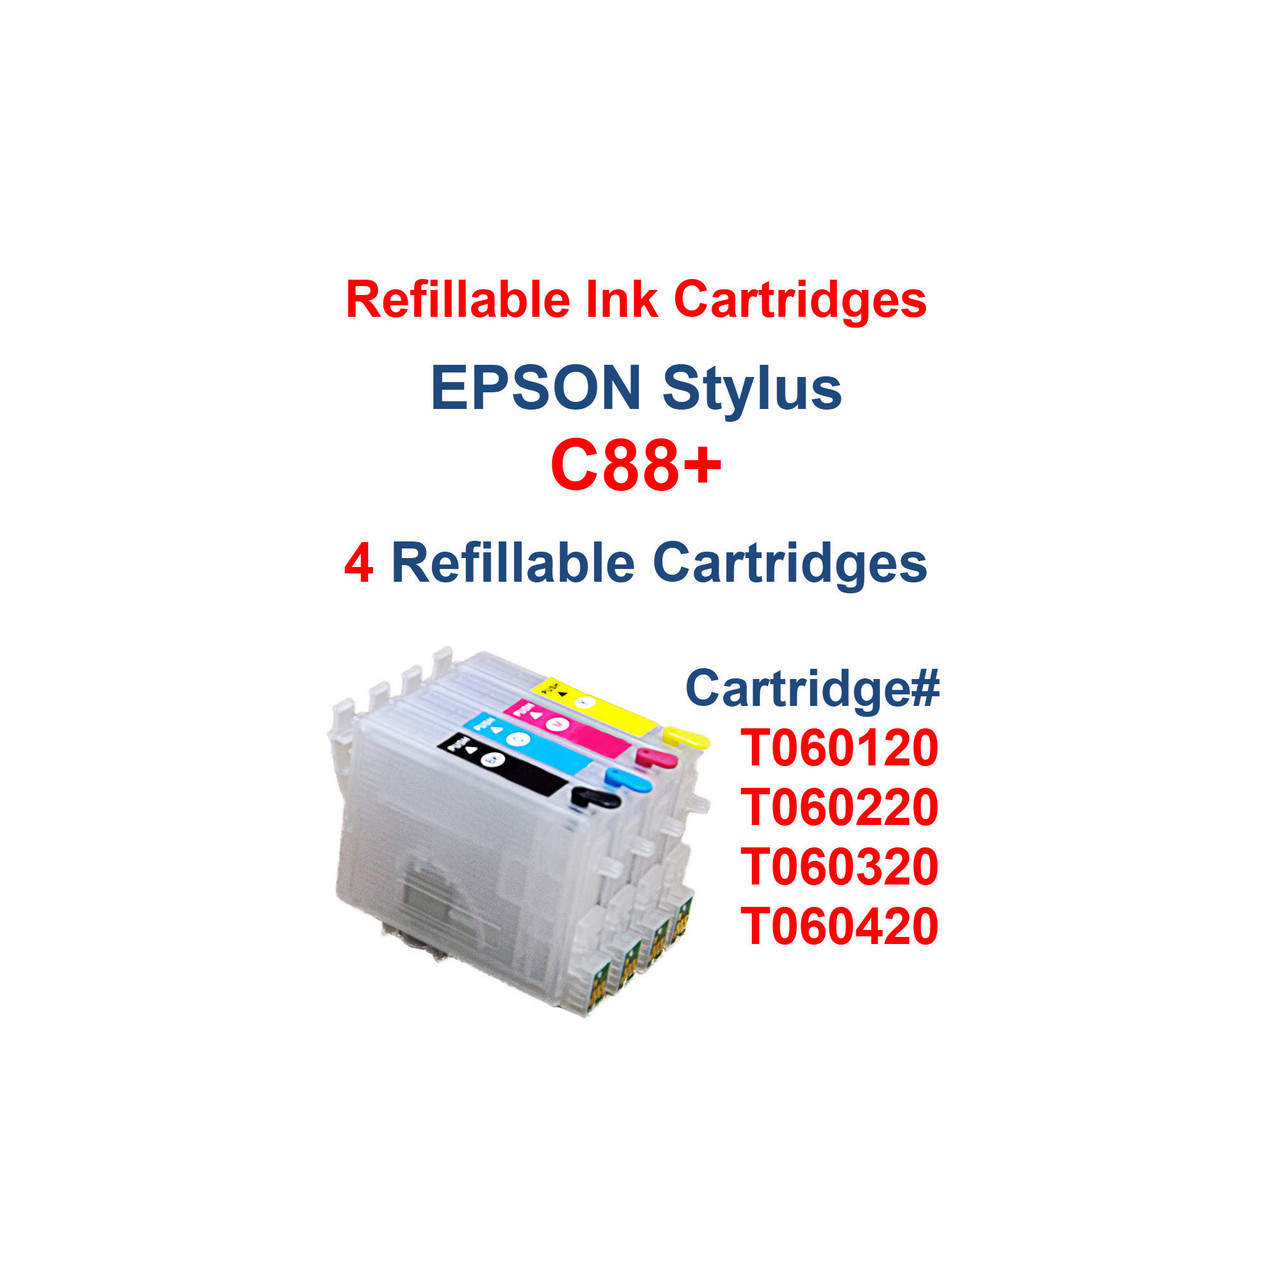 4- Refillable Ink Cartridges with auto reset chips for Epson Stylus C88+ printer  Package includes: 4- Refillable Ink Cartridges with auto reset chips 4- Syringes for filling cartridges  >> Our Refillable Cartridges have a Auto Reset Chip installed on them, no chip Resetter is needed   >>> Los Angeles same day delivery available (Contact us for pricing) <<<